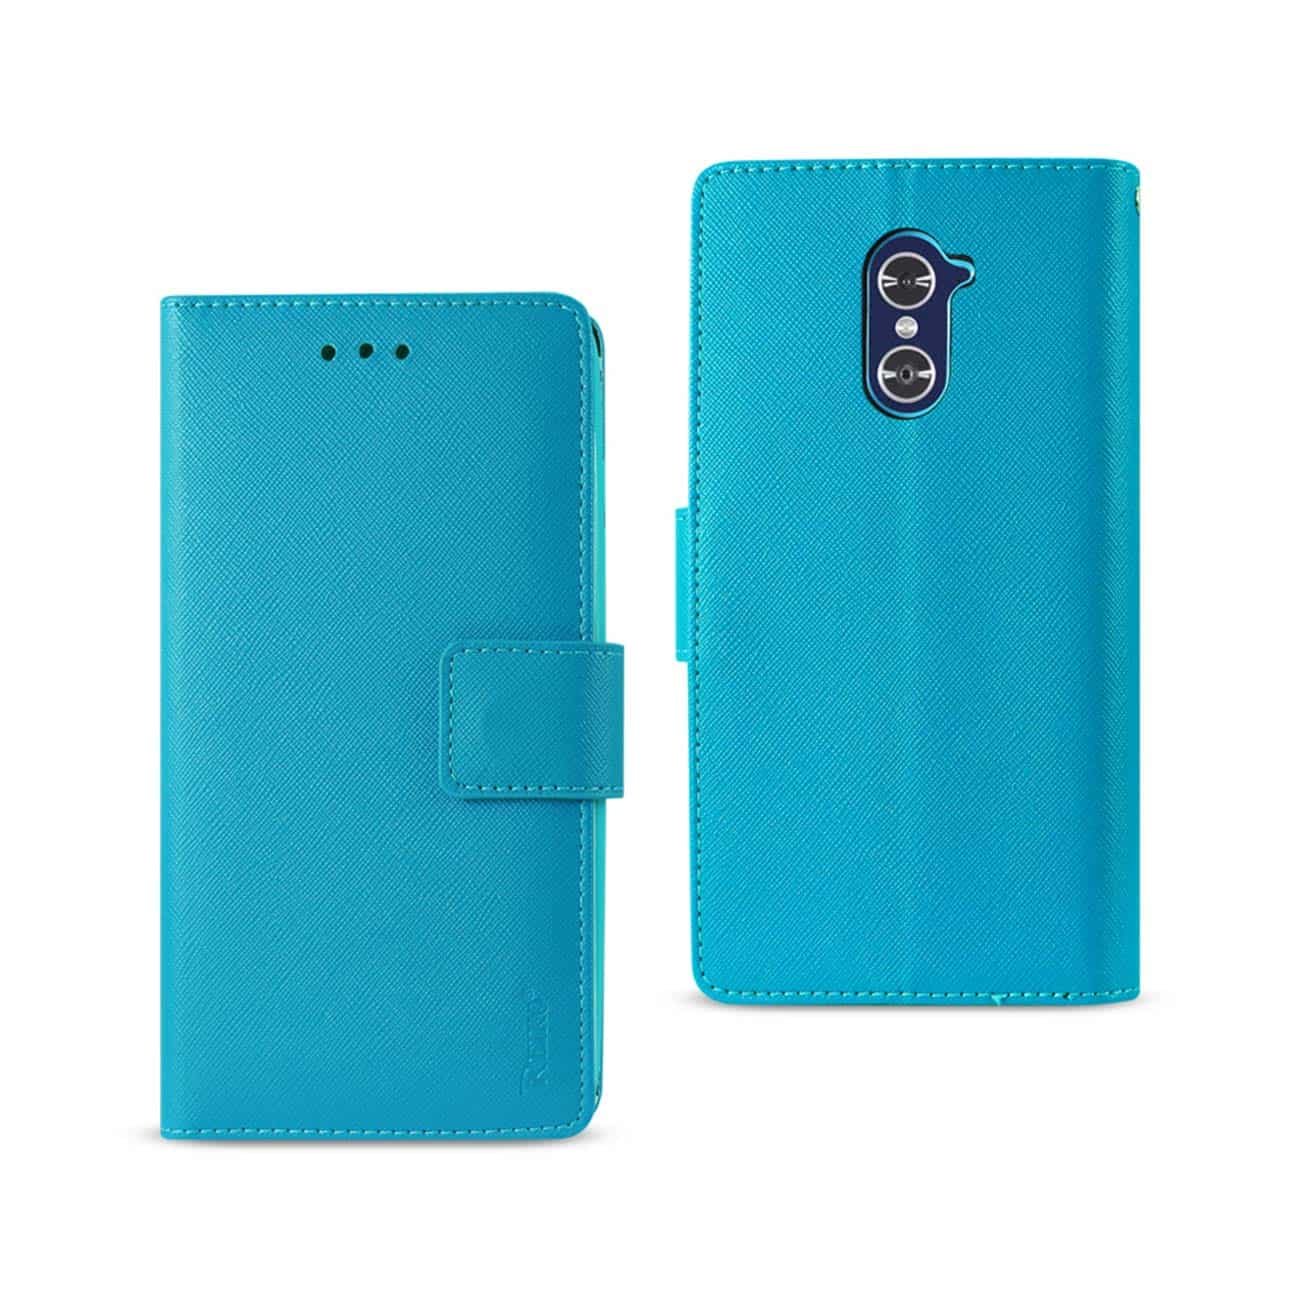 ZTE GRAND X MAX 2 WALLET CASE WITH INNER ZEBRA PRINT IN BLUE